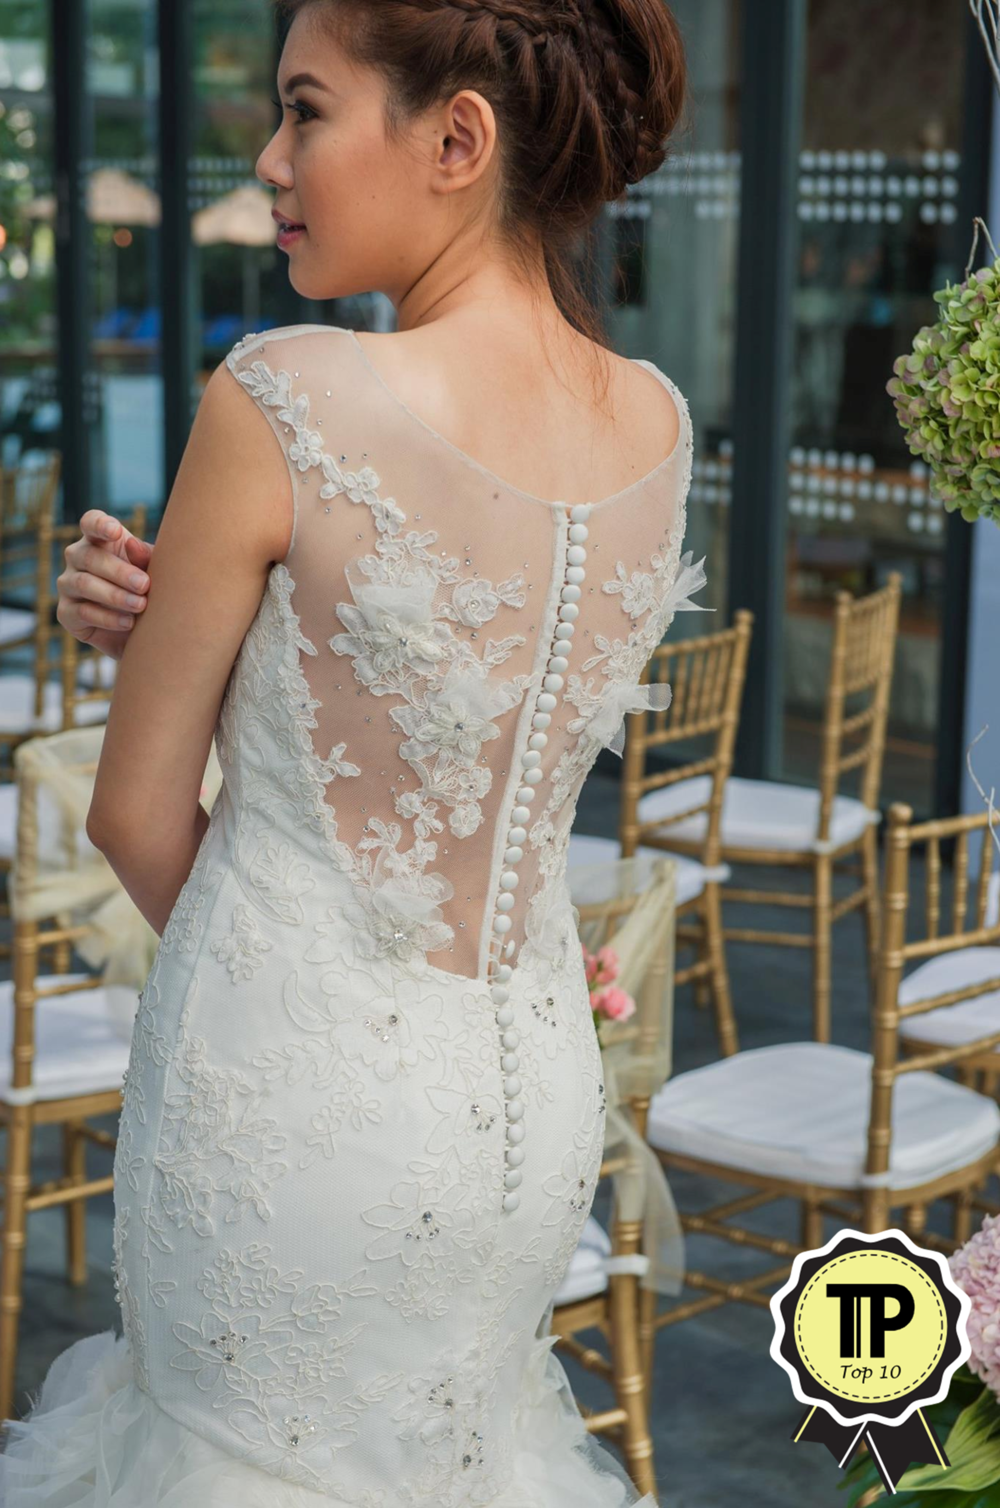 malaysias-top-10-wedding-gown-specialists-that-special-occasion